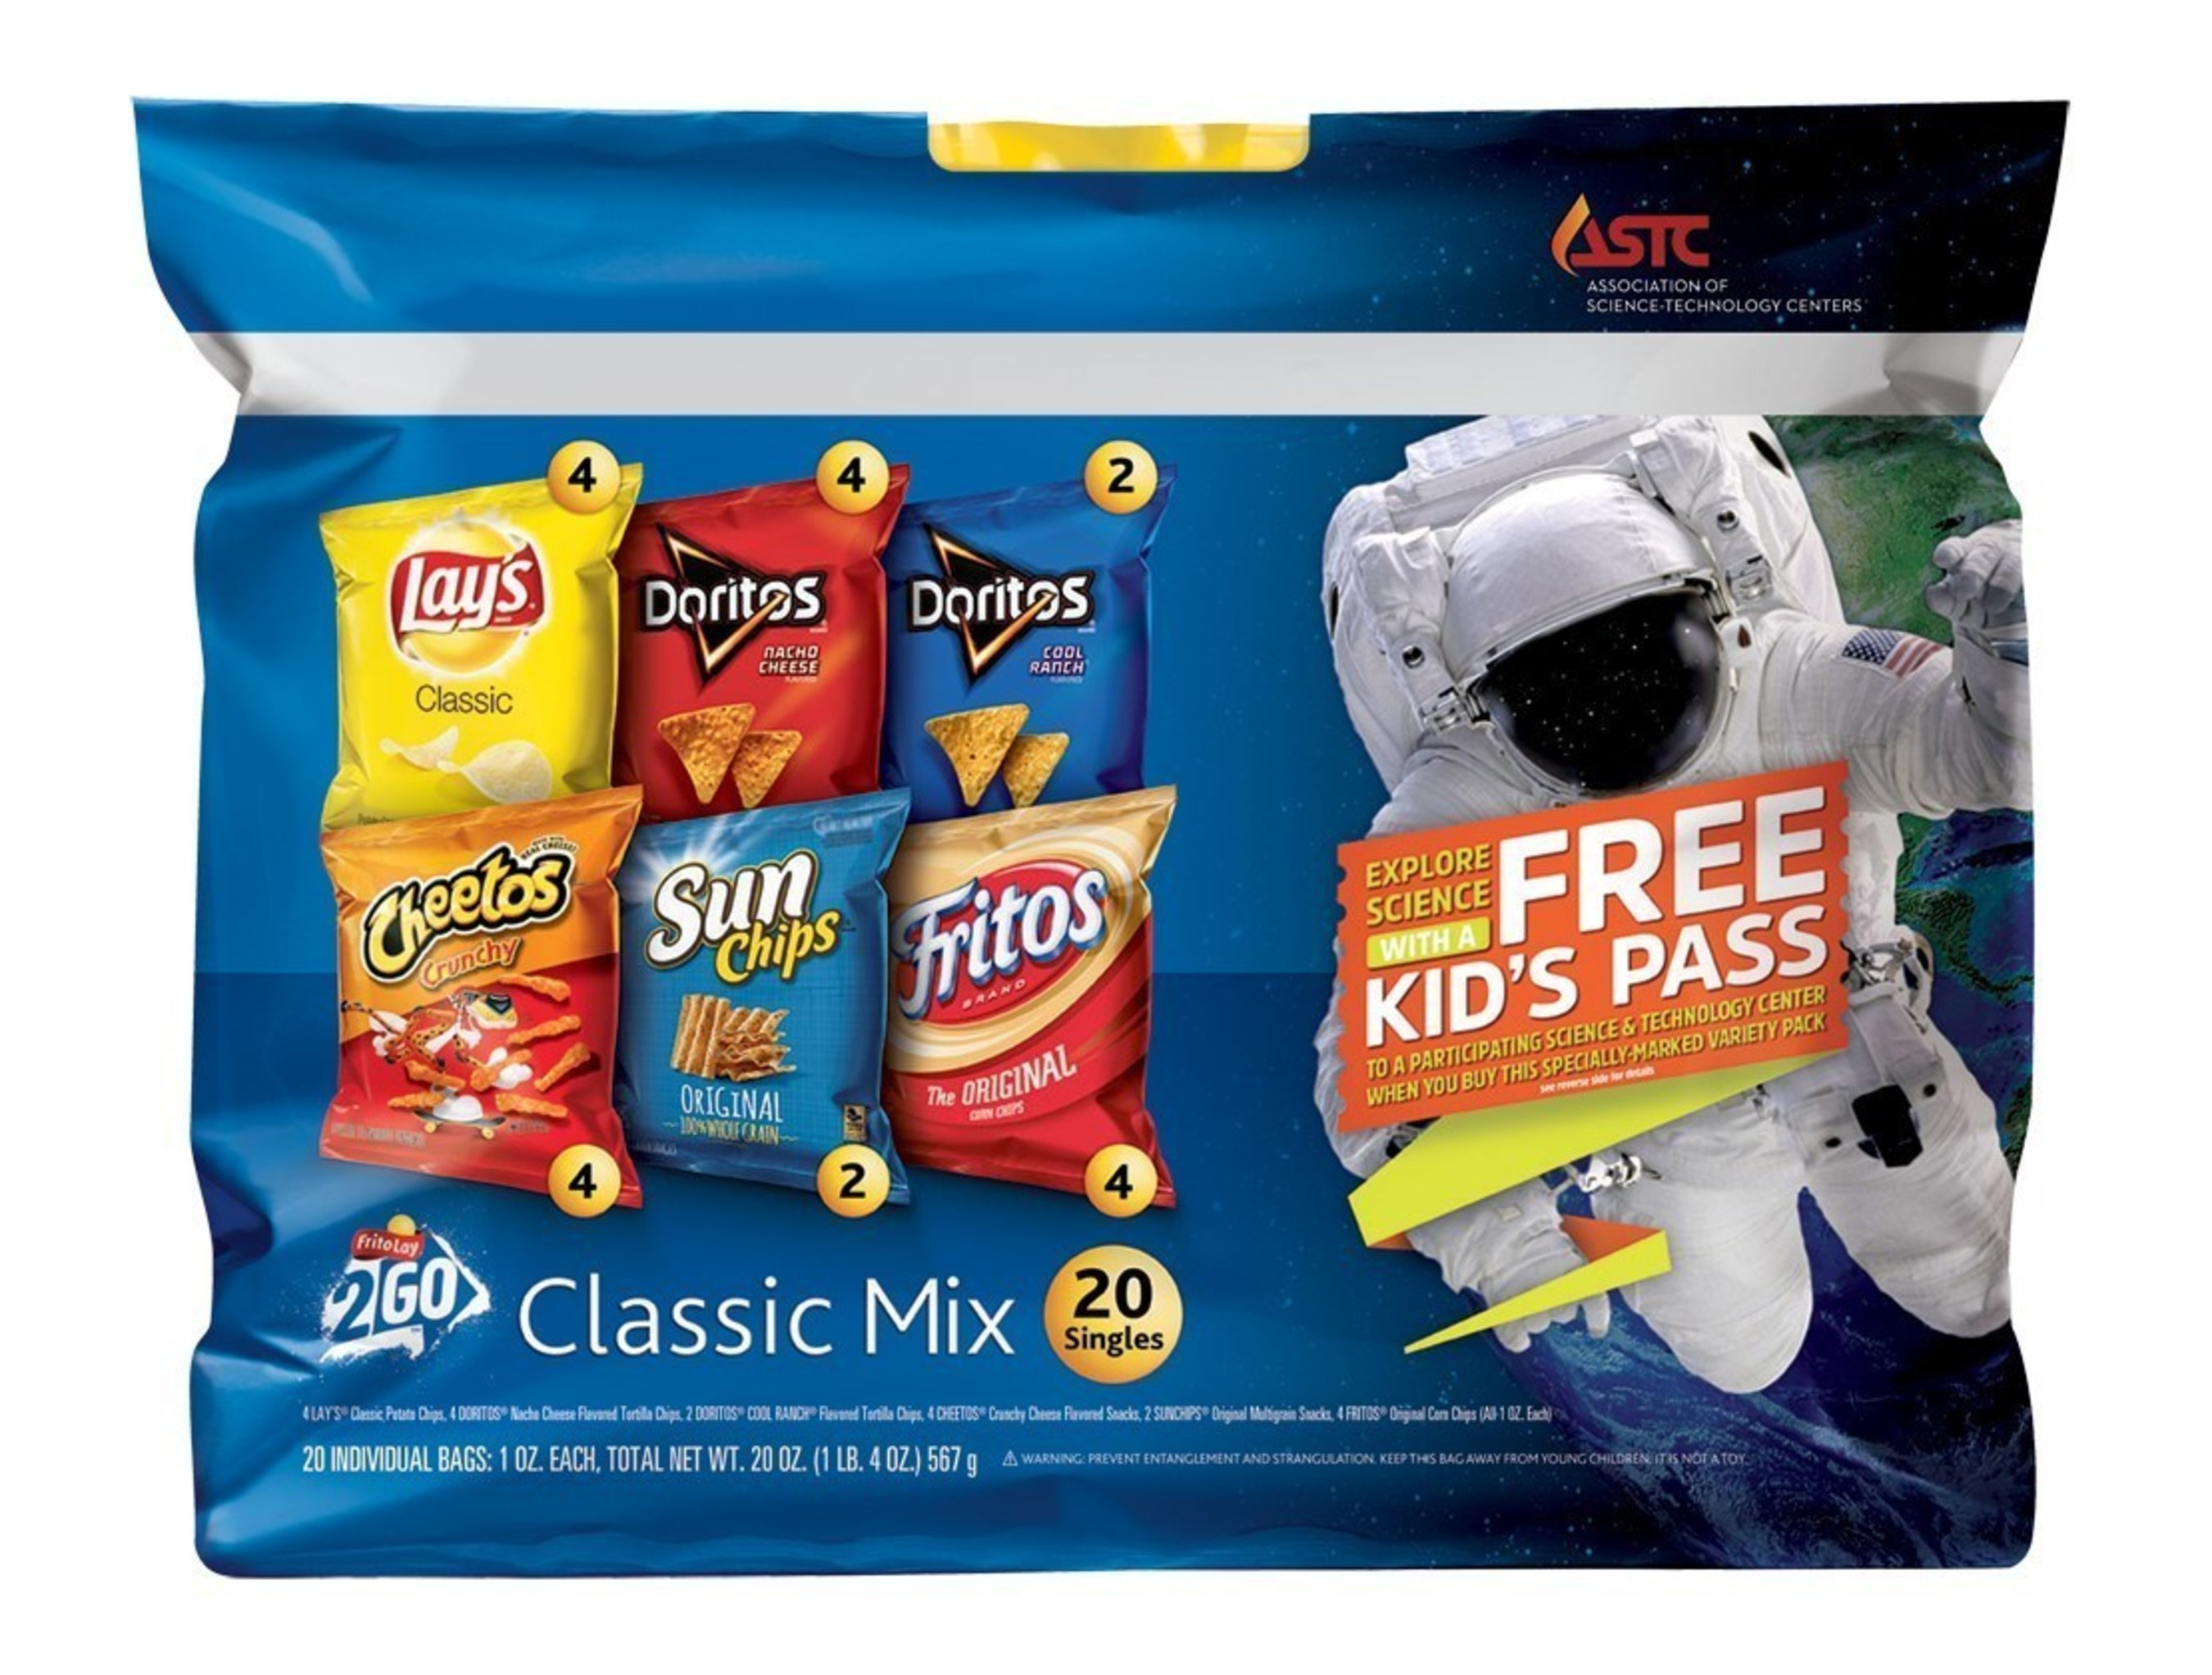 Frito-Lay 2 Go Variety Packs partners with the Association of Science-Technology (ASTC) to offer free kid's passes to participating ASTC member science centers with the purchase of specially marked packages of Frito-Lay 2 Go.